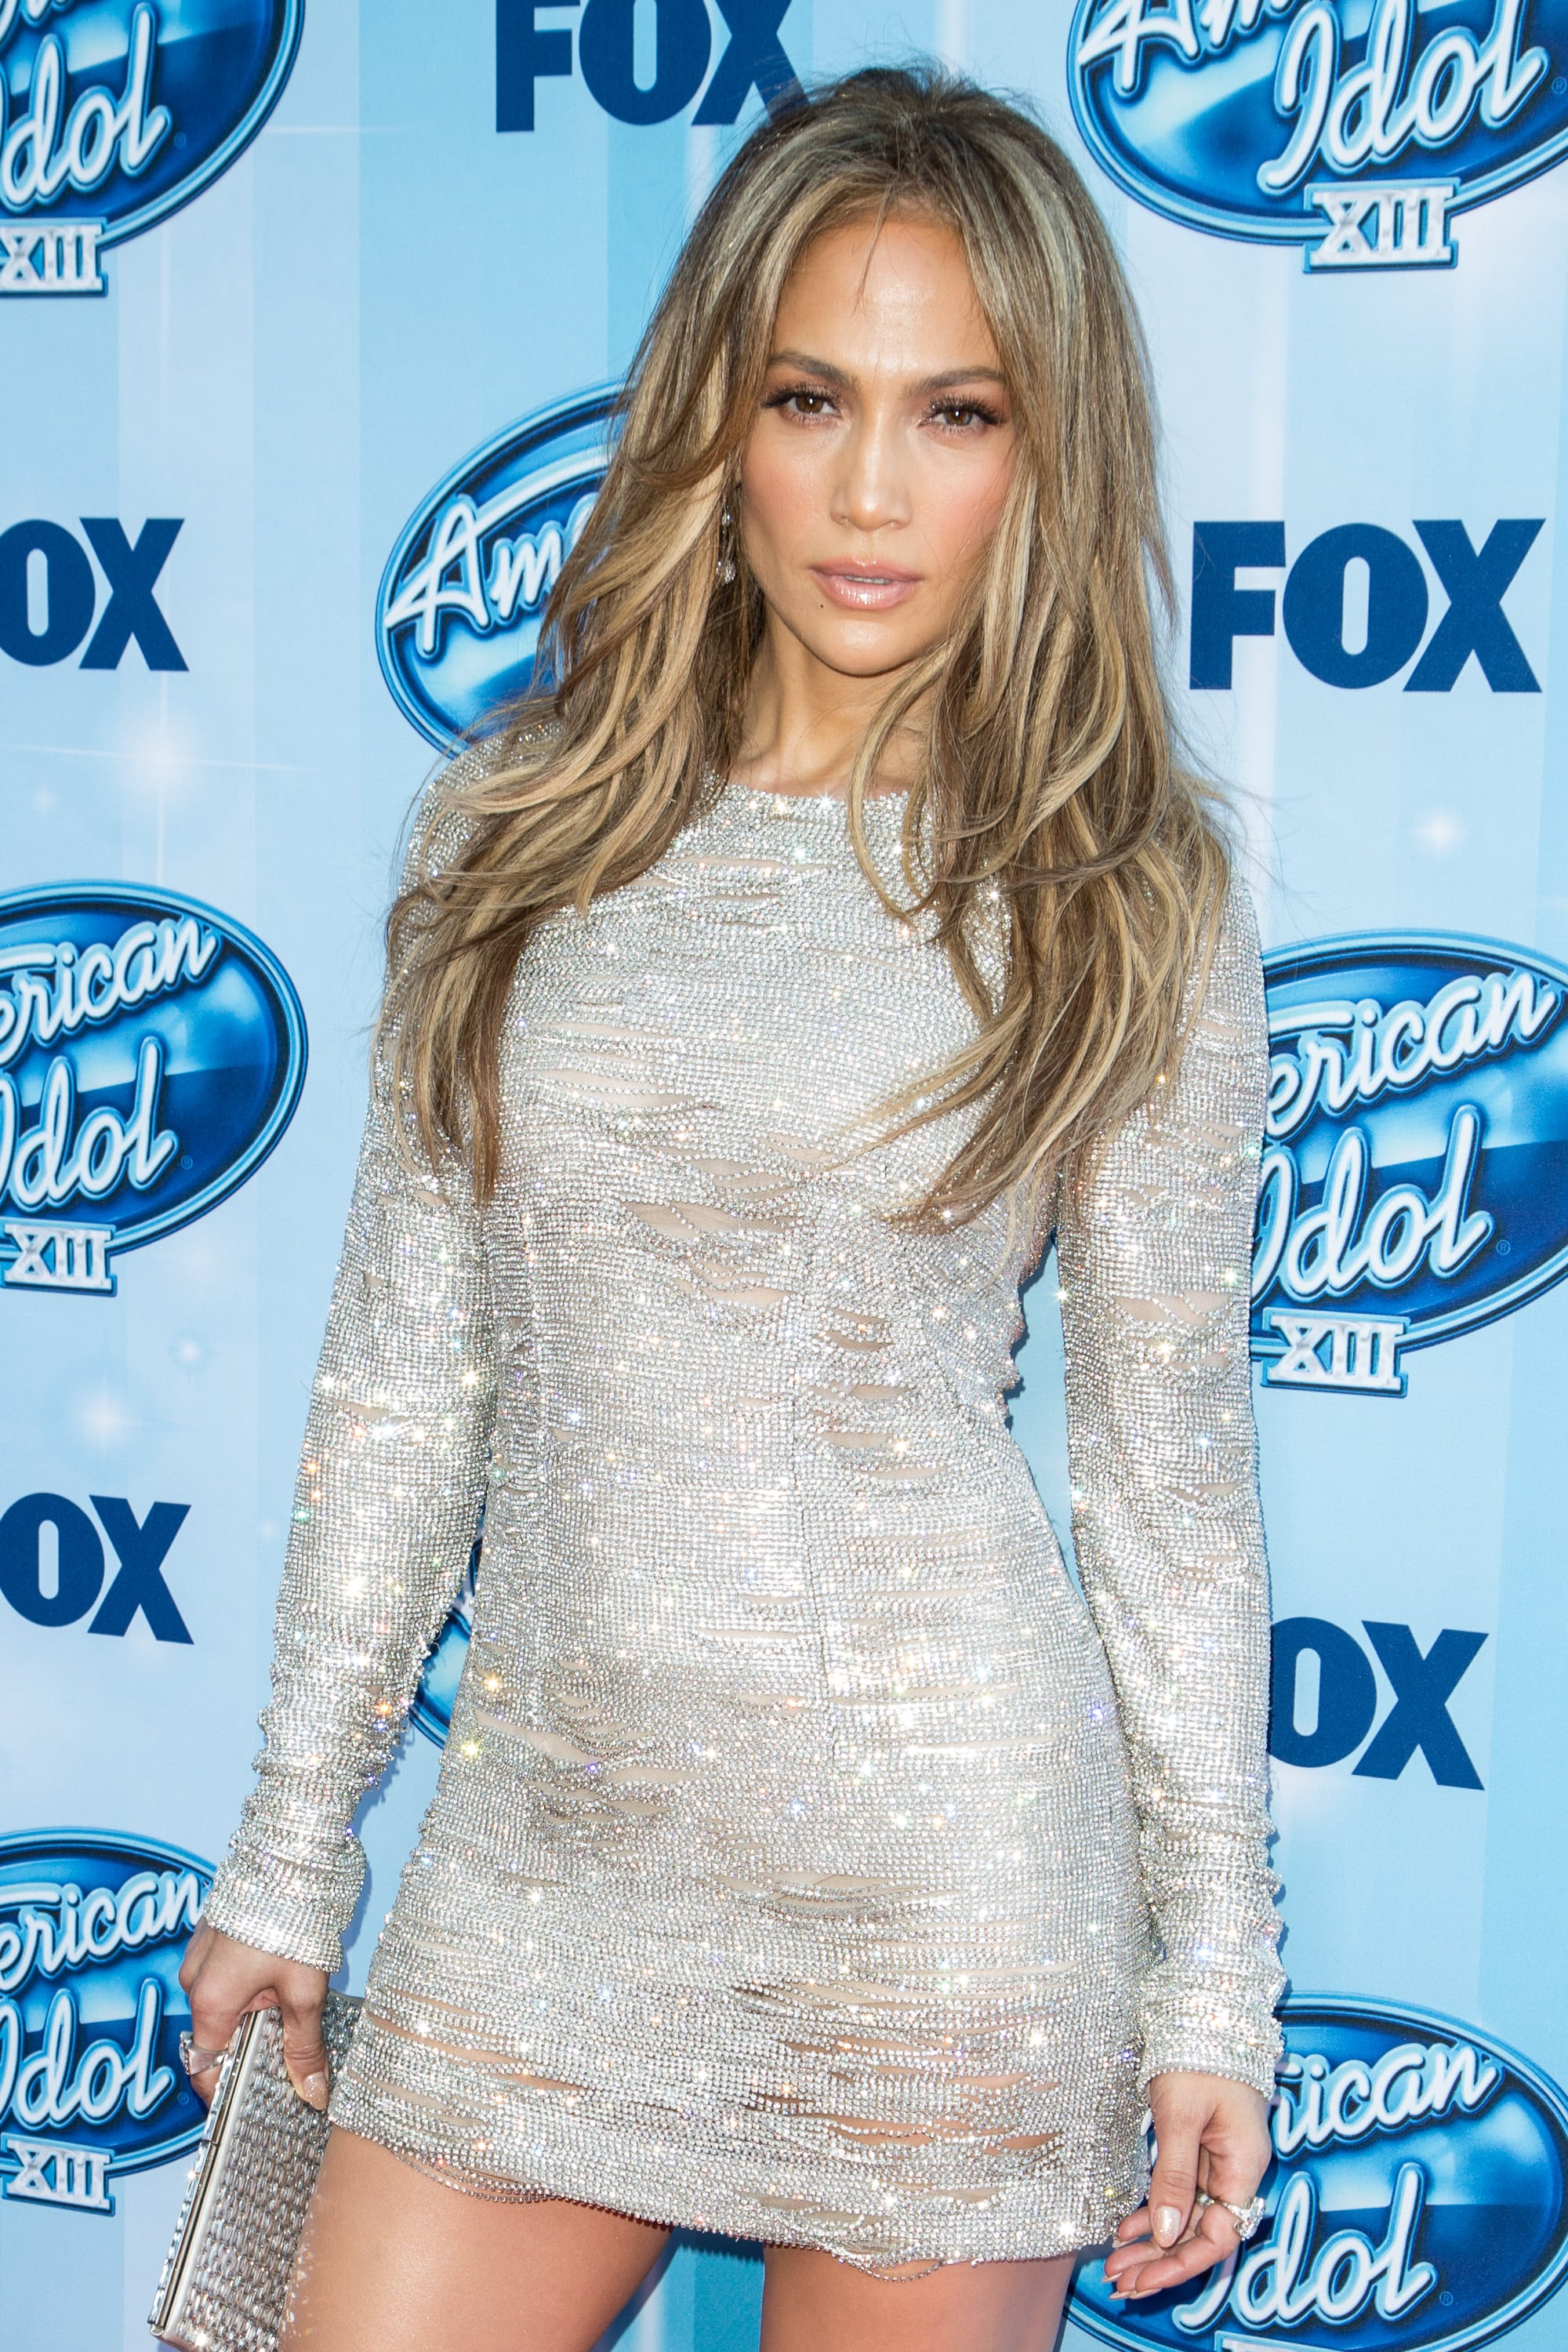 This could very easily be a wax figure. Is she a wax figure?